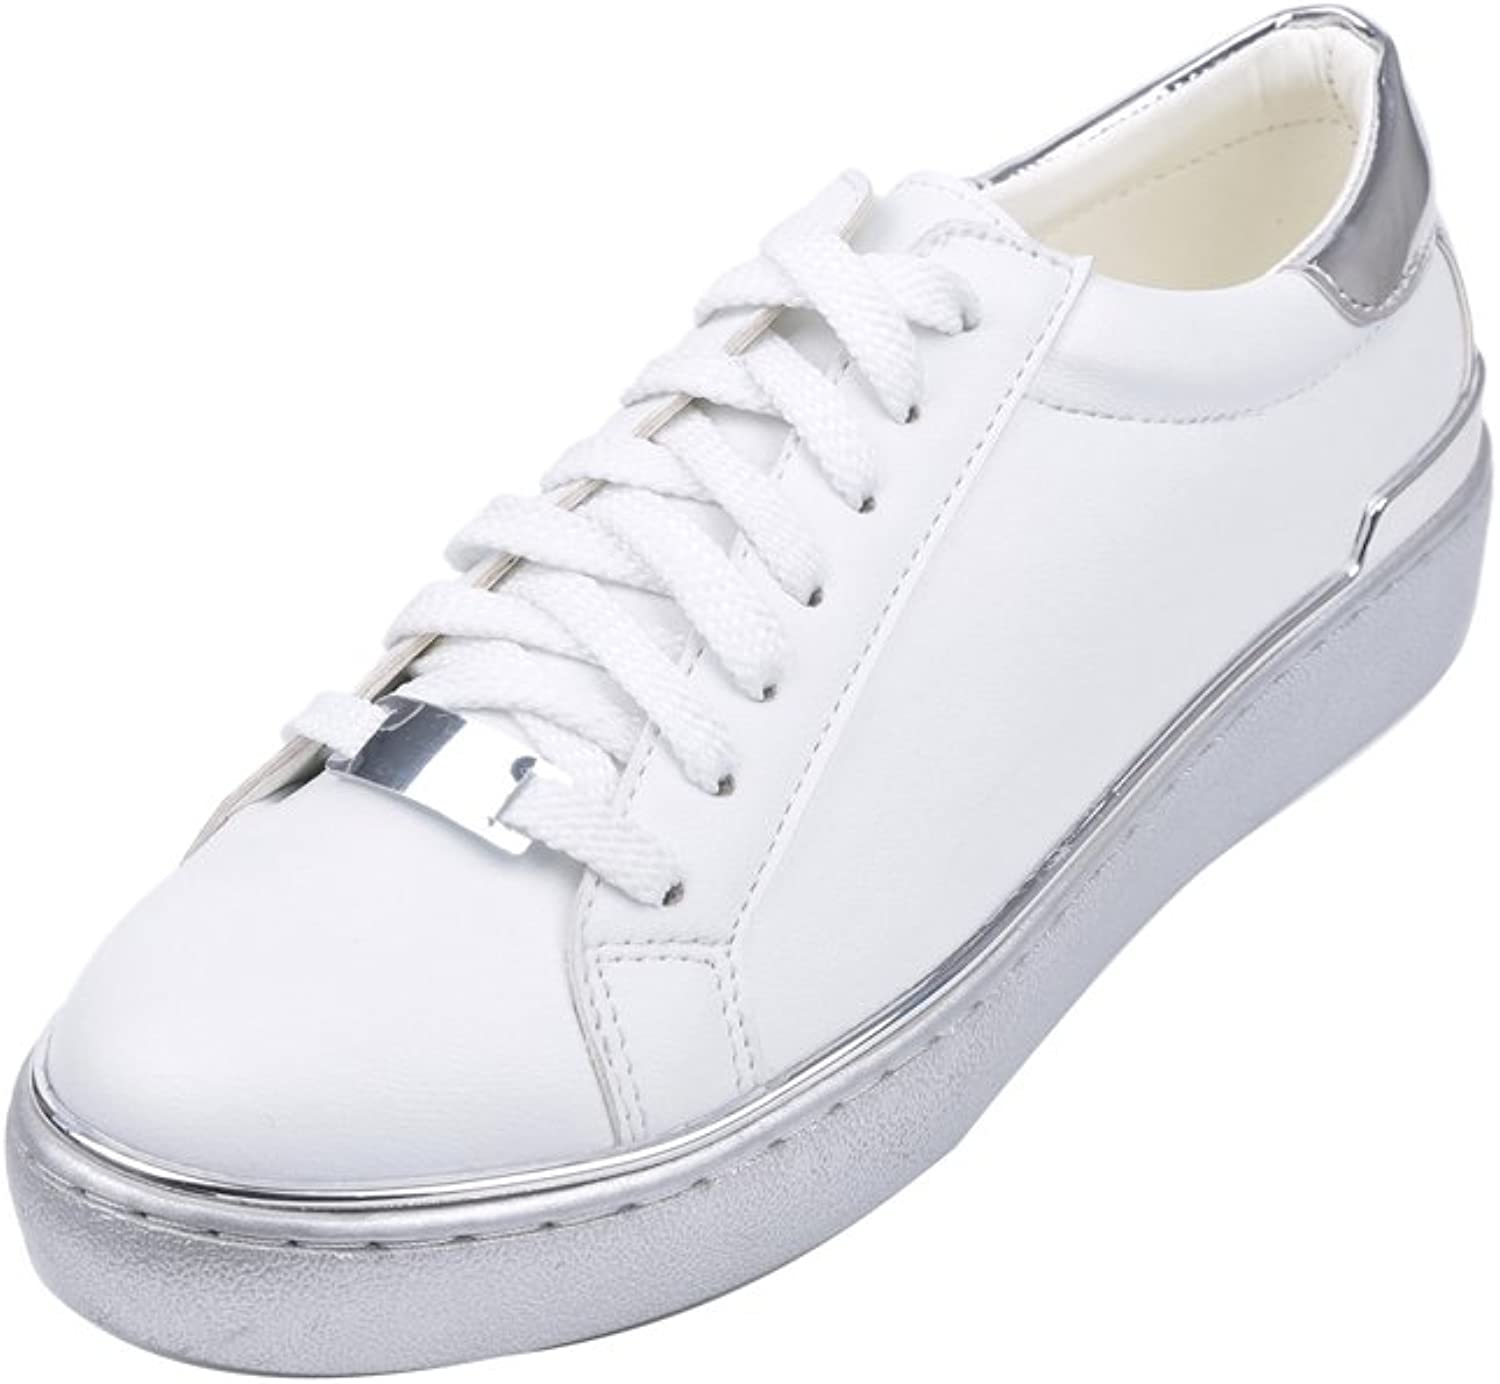 1TO9 Womens Microfiber Lace-Up Silver Microfiber Walking shoes - 5.5 B(M) US